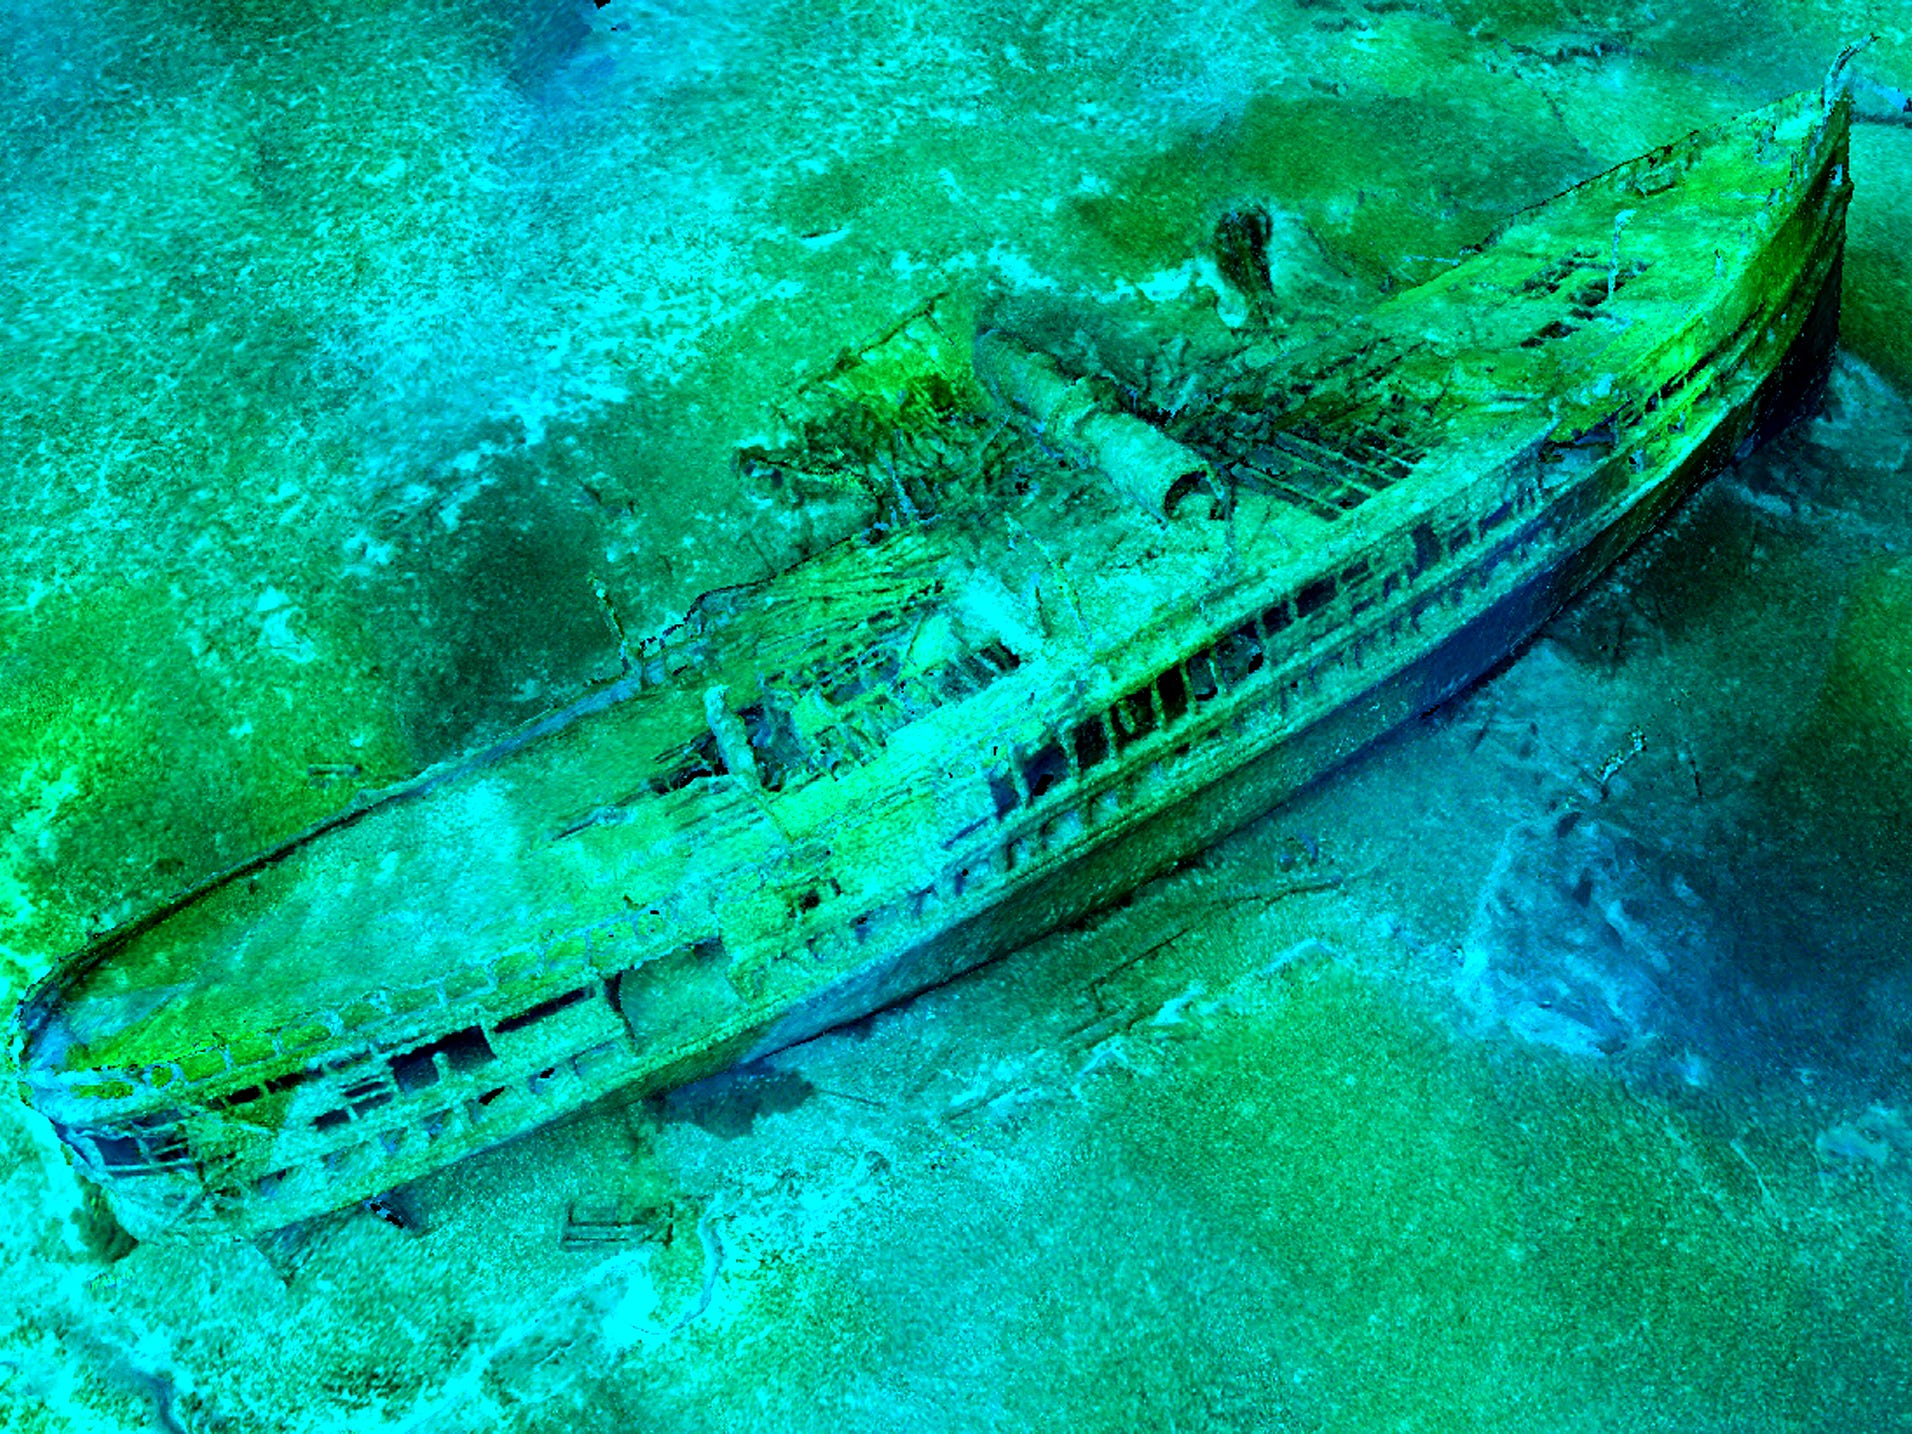 Using a method invented by search team member Jerry Eliason, 3D imaging of the J.H. Jones was created utilizing a special, remote-operated video camera lowered to the shipwreck. The toppled smoke stack lies near midship.